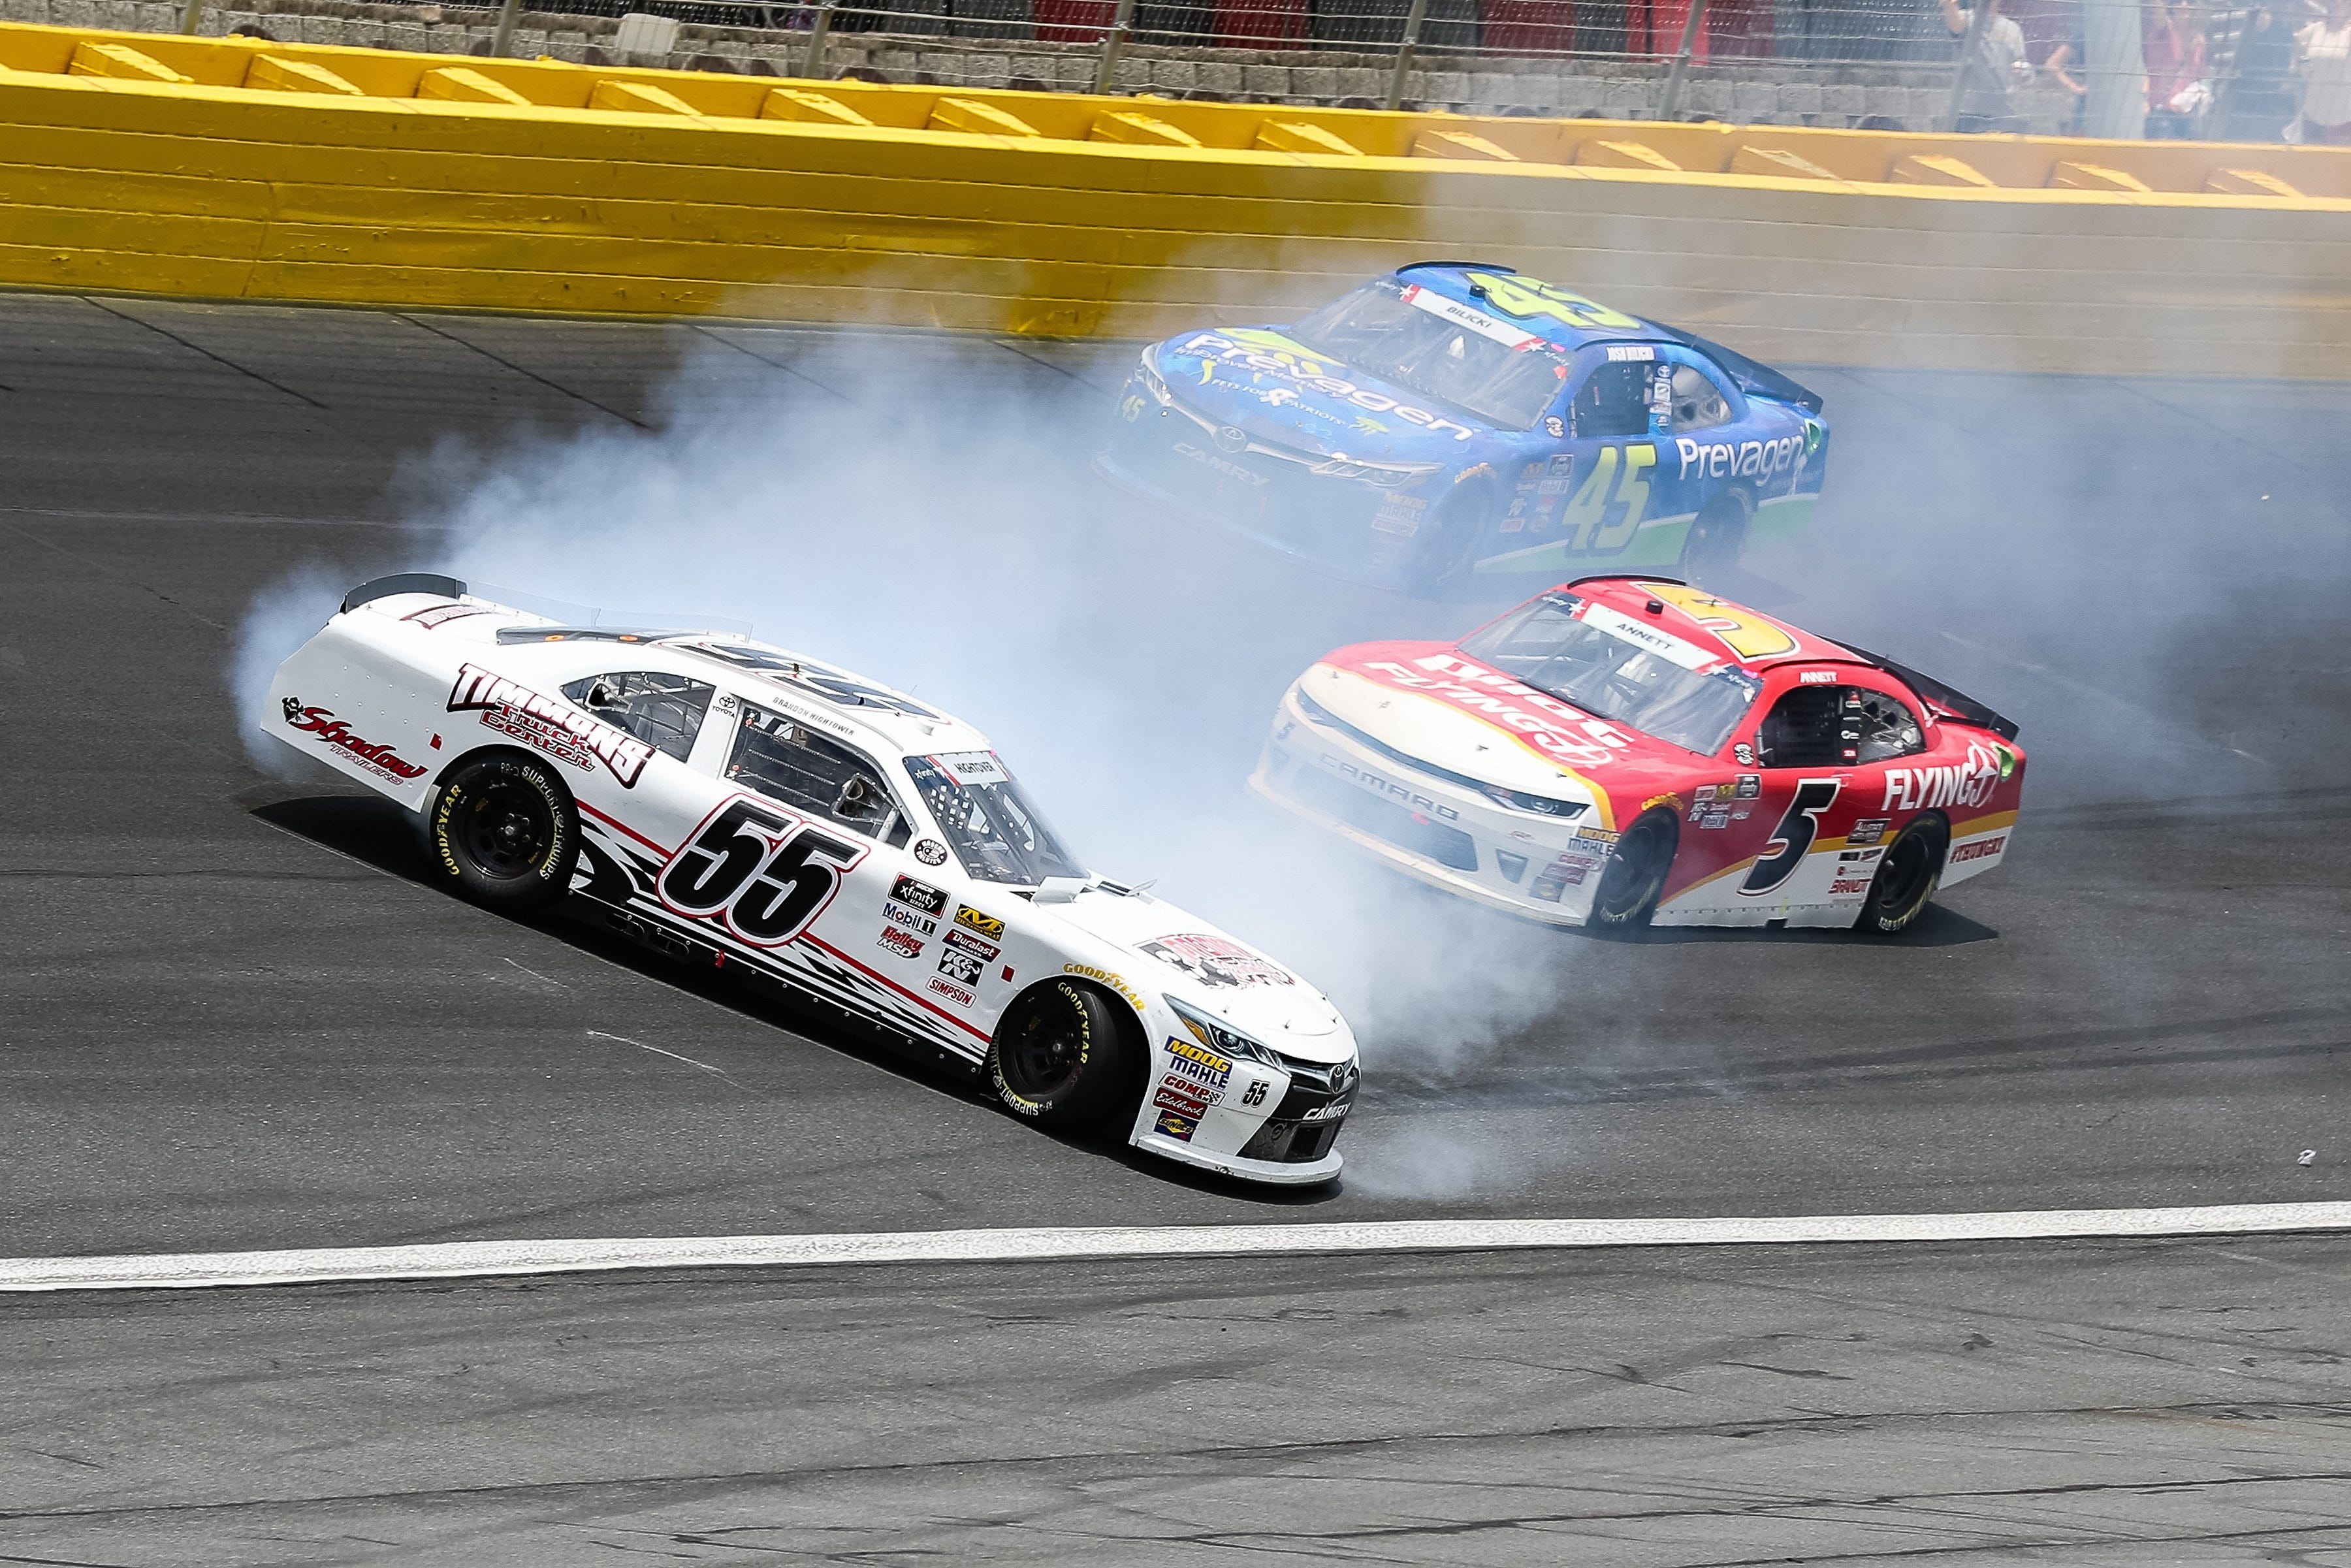 NASCAR Xfinity Series driver Brandon Hightower, left, slides in a one car spin during the Alsco 300 at Charlotte Motor Speedway.